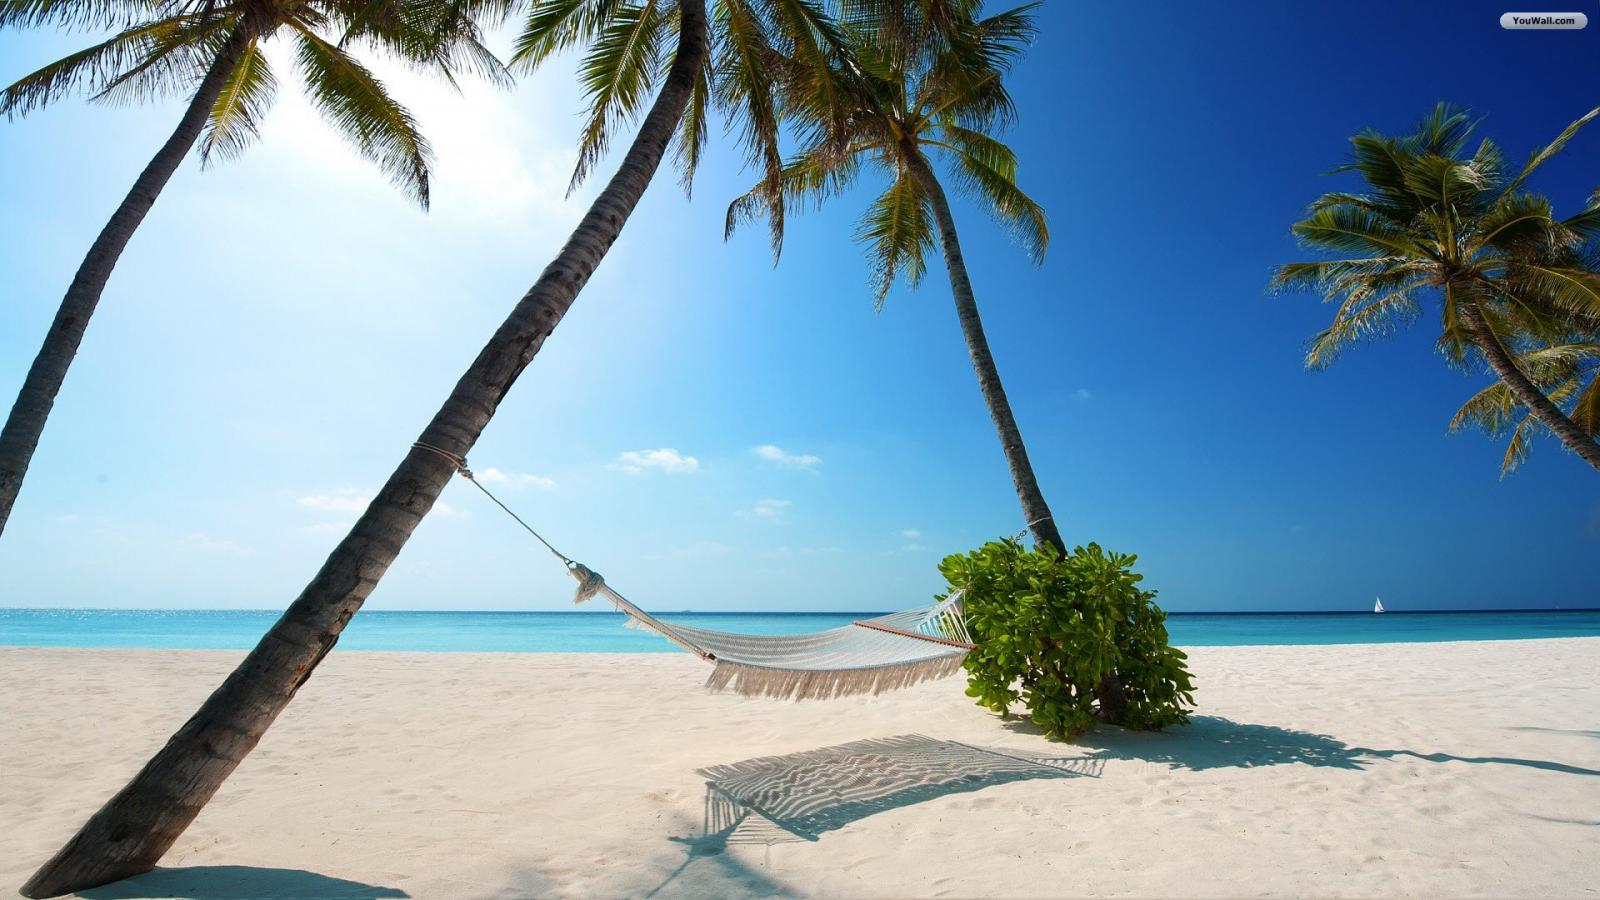 Paradise Beach Wallpaper   wallpaperwallpapersfree wallpaper 1600x900